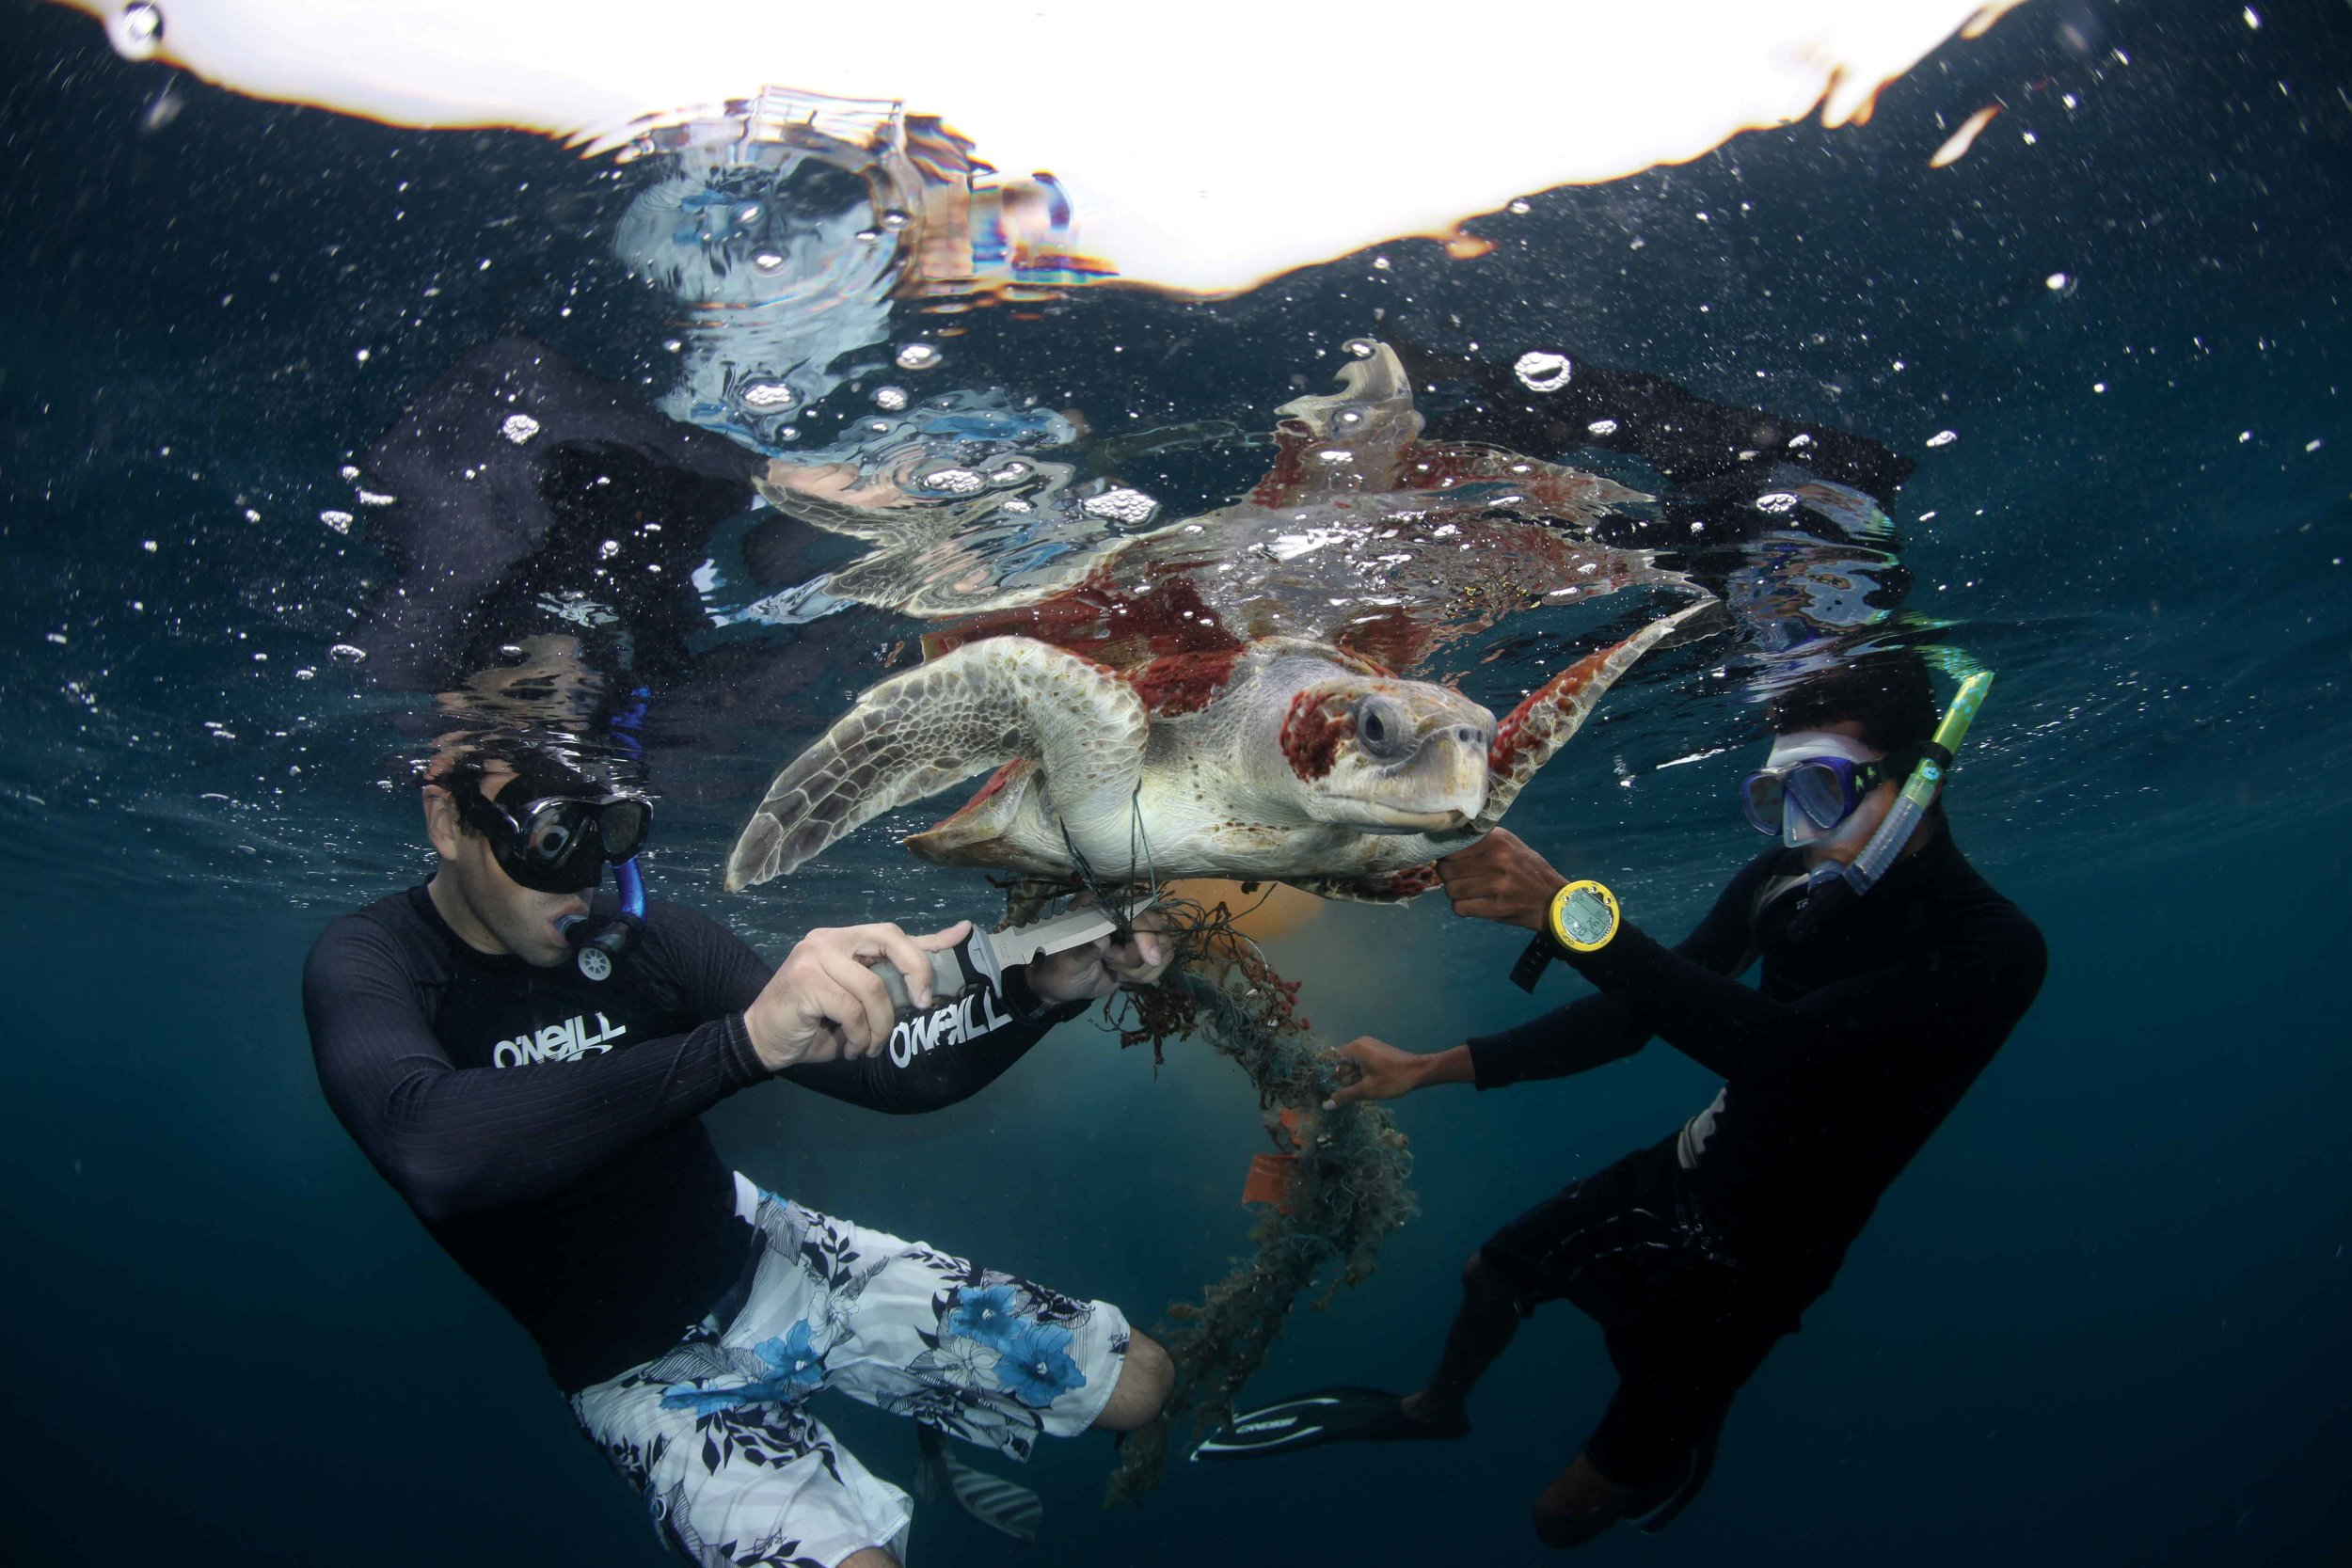 Local divers disentangle an olive ridley turtle from a ghost net in Baa Atoll, Maldives. © THOMAS BADSTUBNER